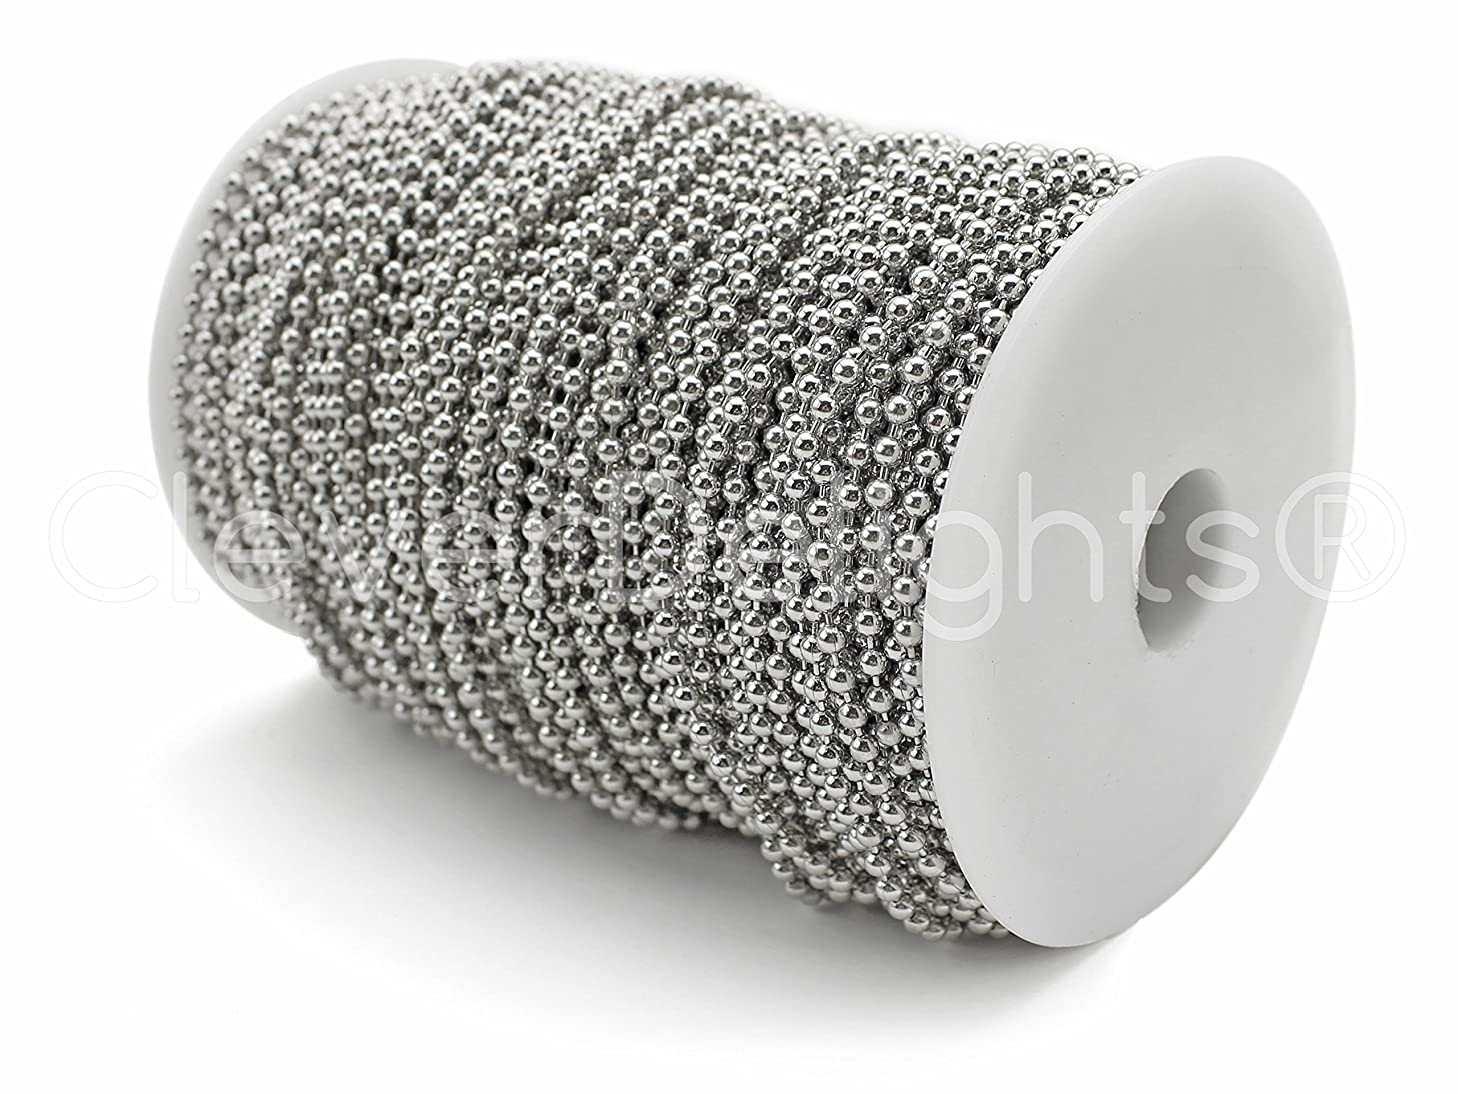 CleverDelights Ball Chain Spool - 330 Feet - 3.2mm Ball (#6 Size) - Antique Silver (Platinum) - 100 Meter